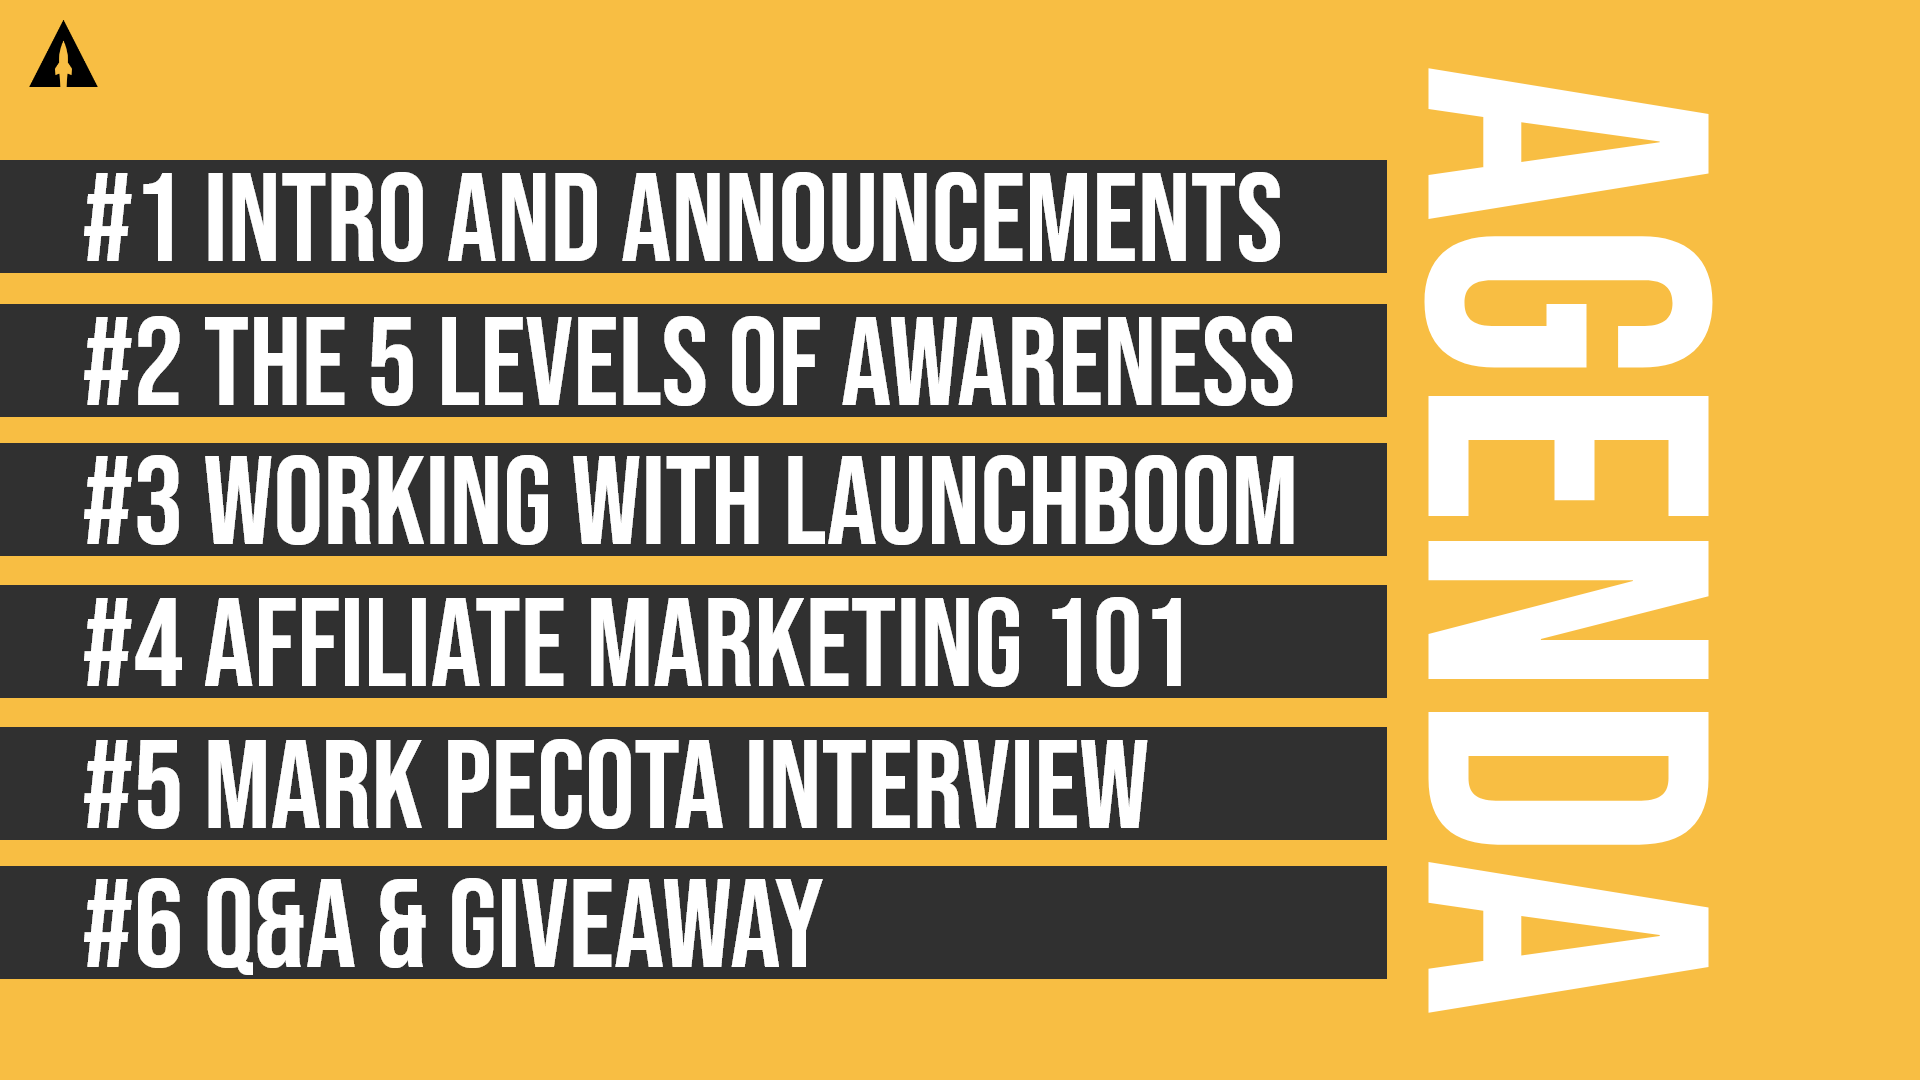 LaunchBoom Live Recap: Customer awareness, affiliate marketing, and an interview